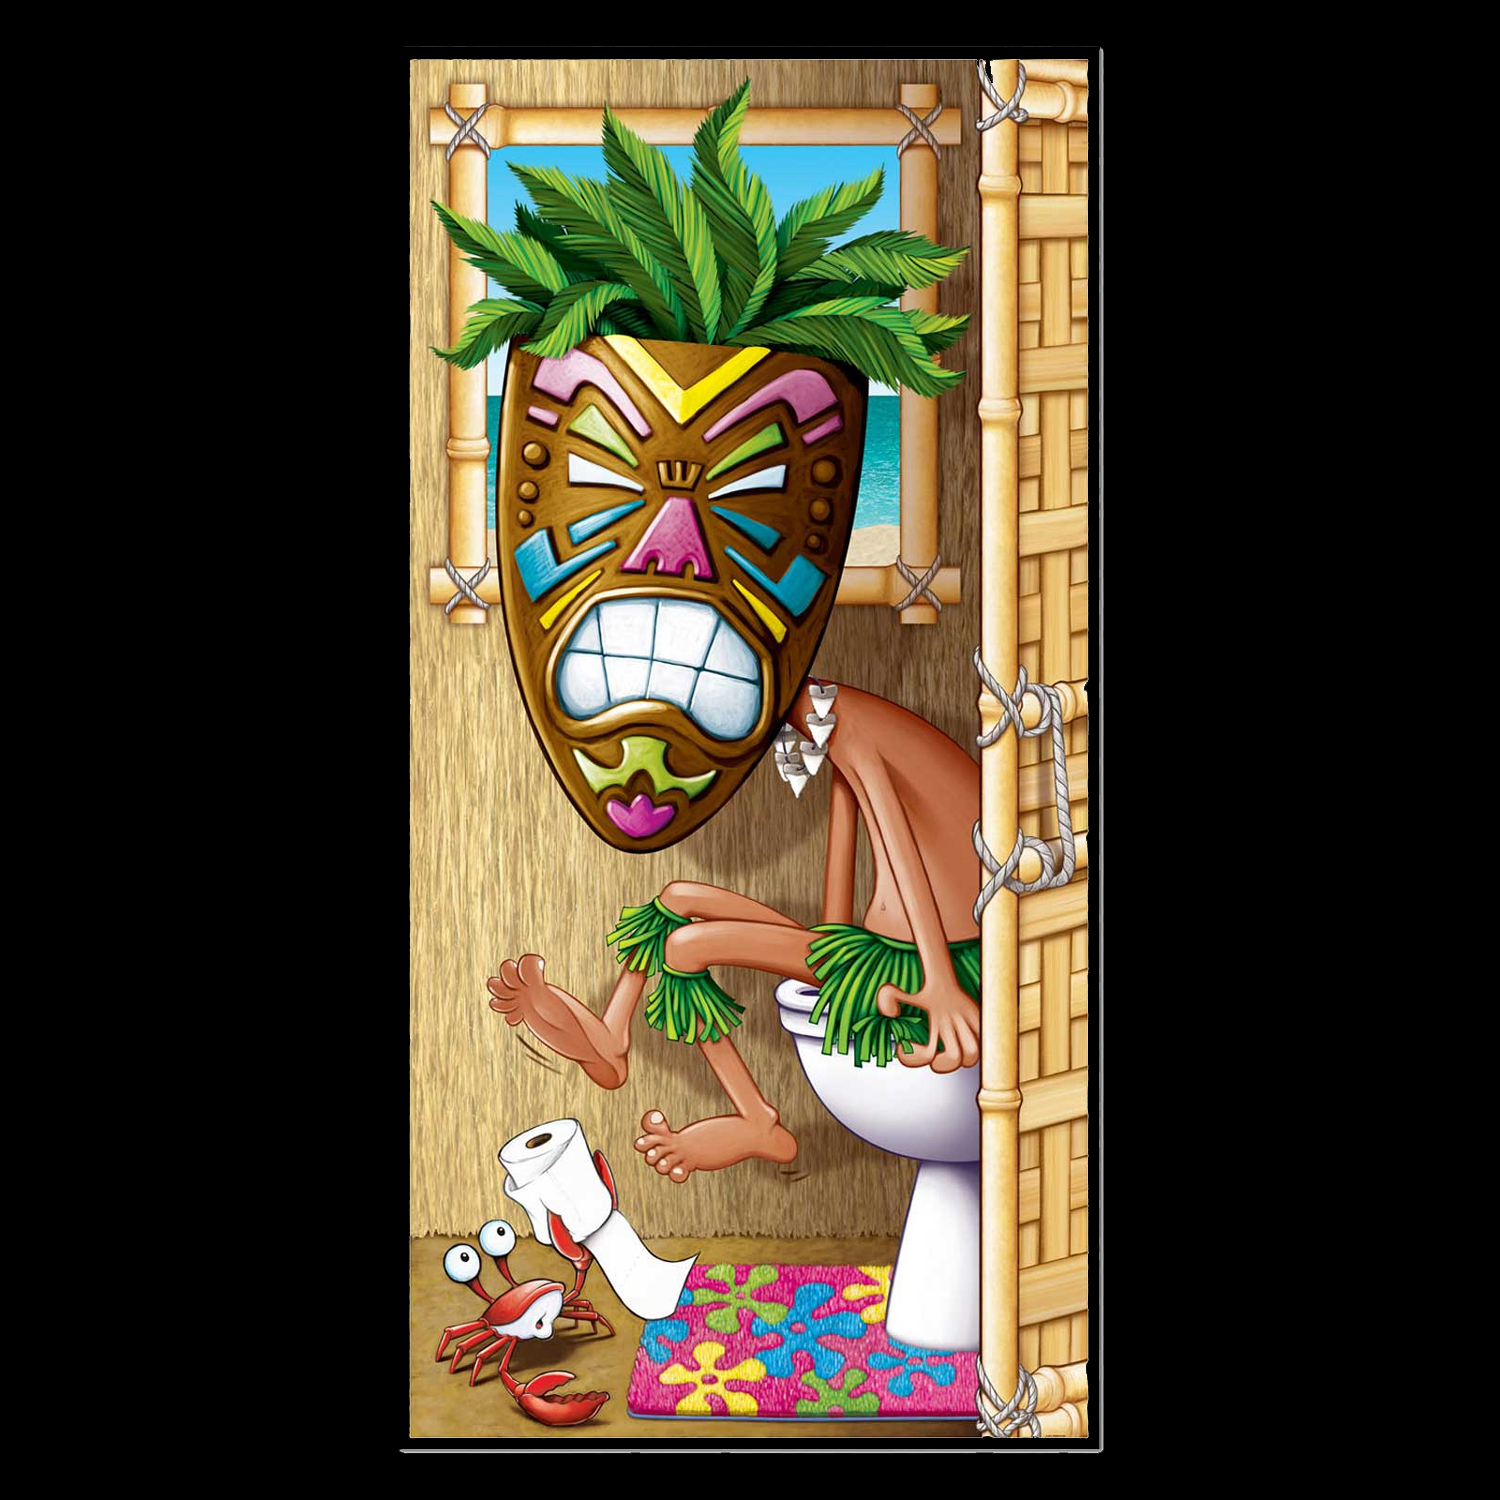 Beau Funny Luau Voodoo TIKI MAN MASK Bathroom Door Cover Decoration